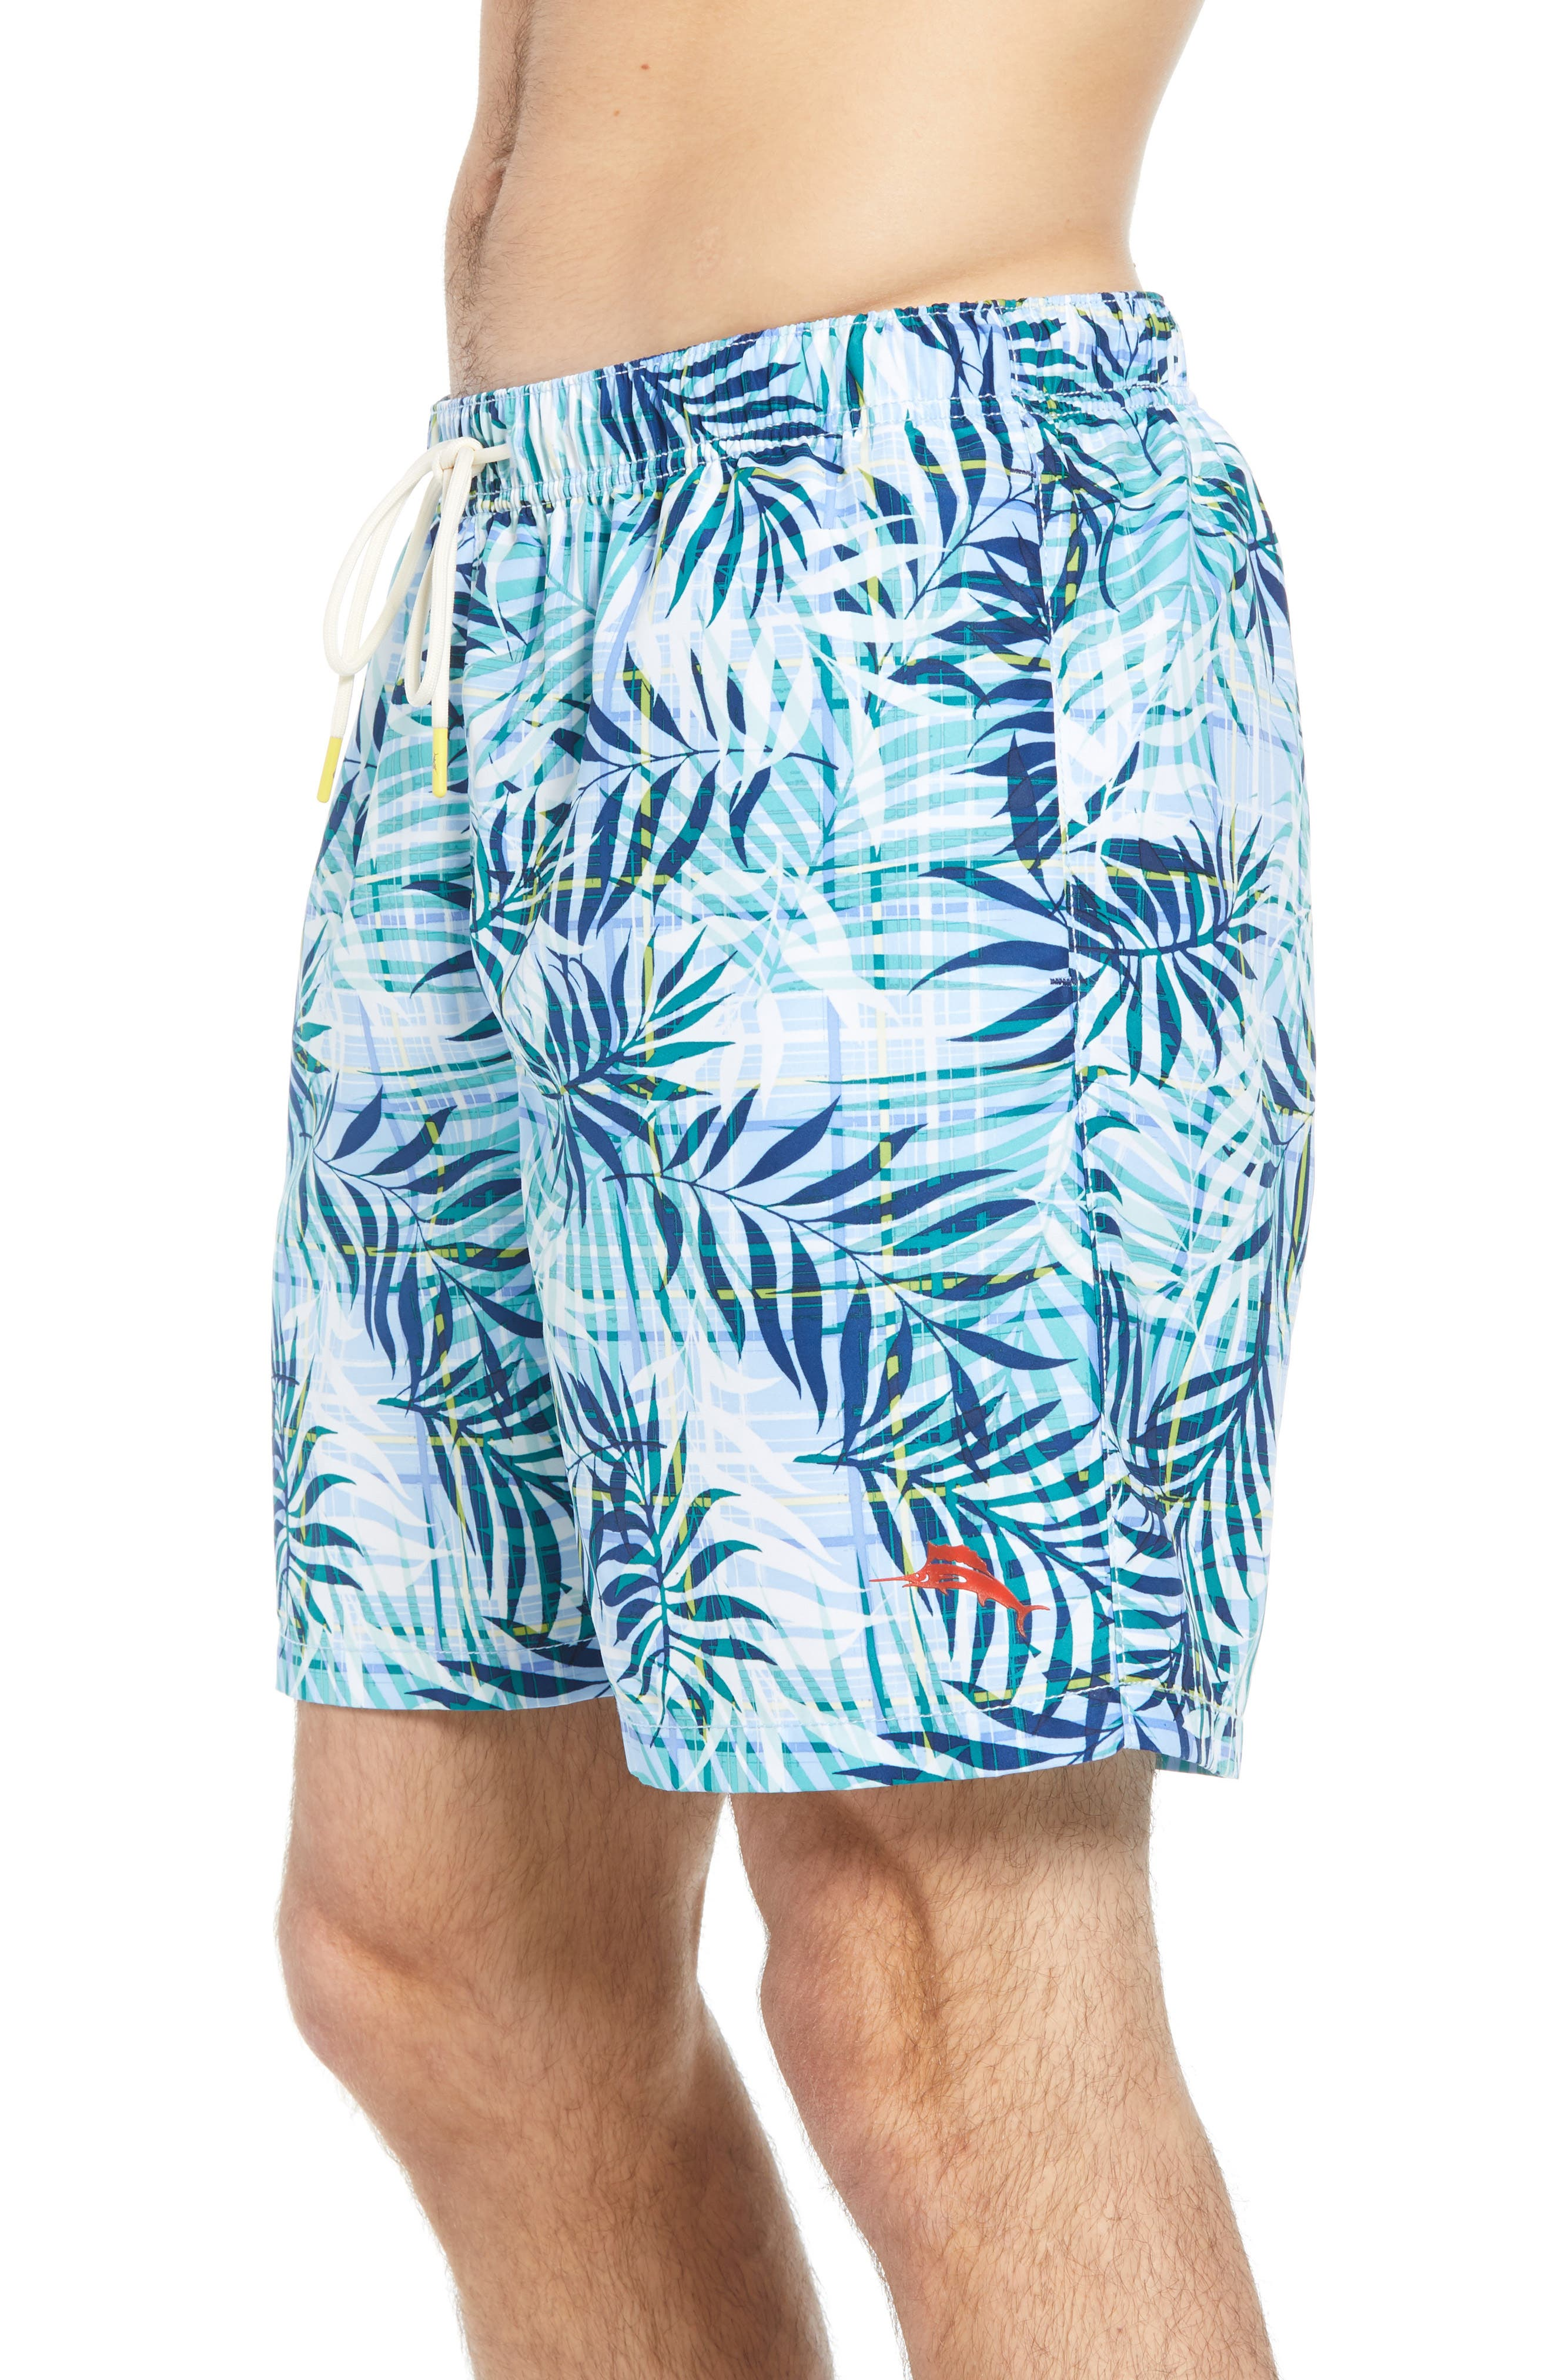 Naples Terraba Swim Trunks,                             Alternate thumbnail 3, color,                             AQUA ICE